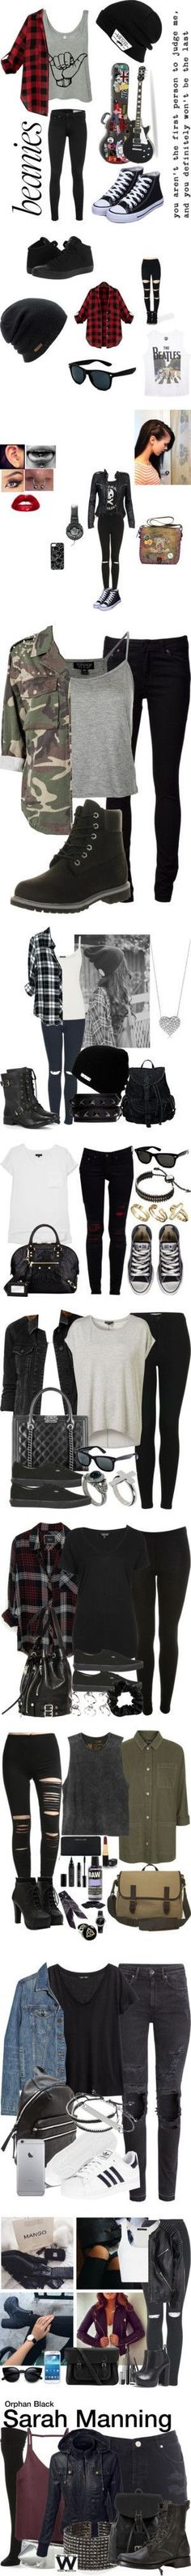 Punk Rock by pebble2000 on Polyvore featuring rag & bone, Vans, Converse, Coal, Wet Seal, Retrò, MuuBaa, Topshop, Marc by Marc Jacobs and Chanel